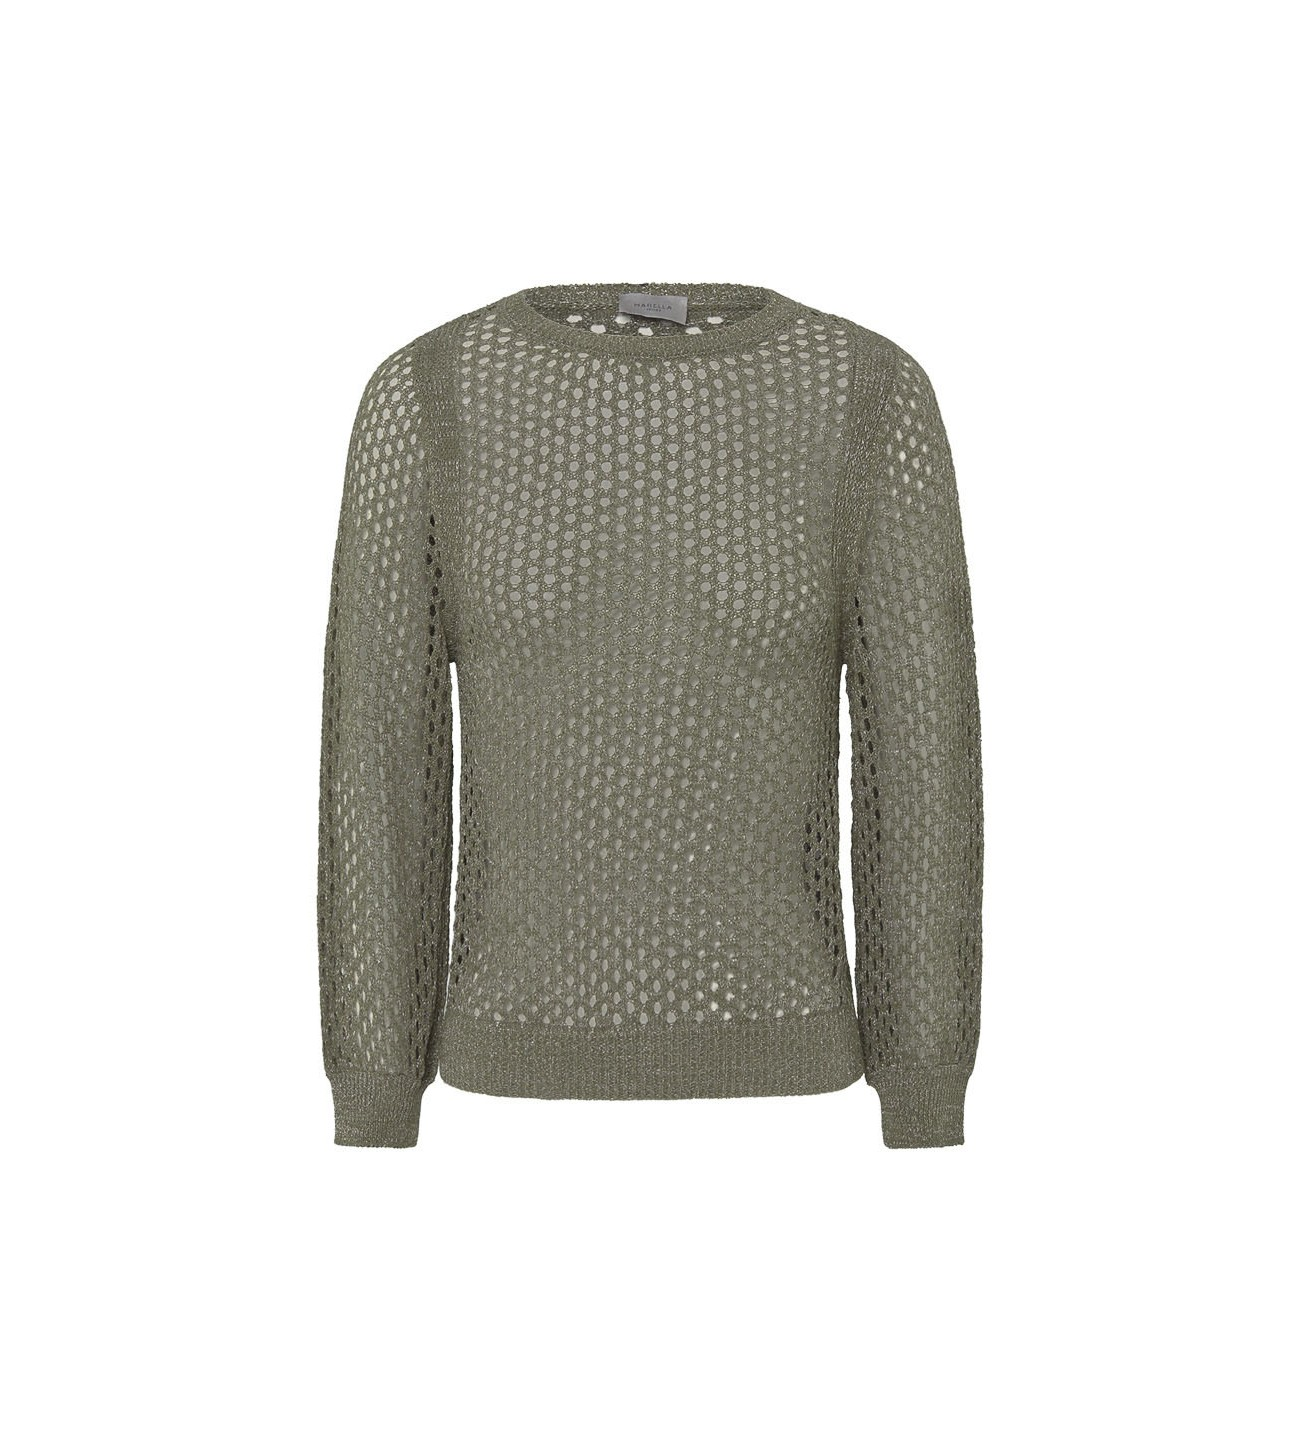 MARELLA_OPEN_KNIT_SWEATER_WITH_LUREX_MARIONA_FASHION_CLOTHING_WOMAN_SHOP_ONLINE_MAREA